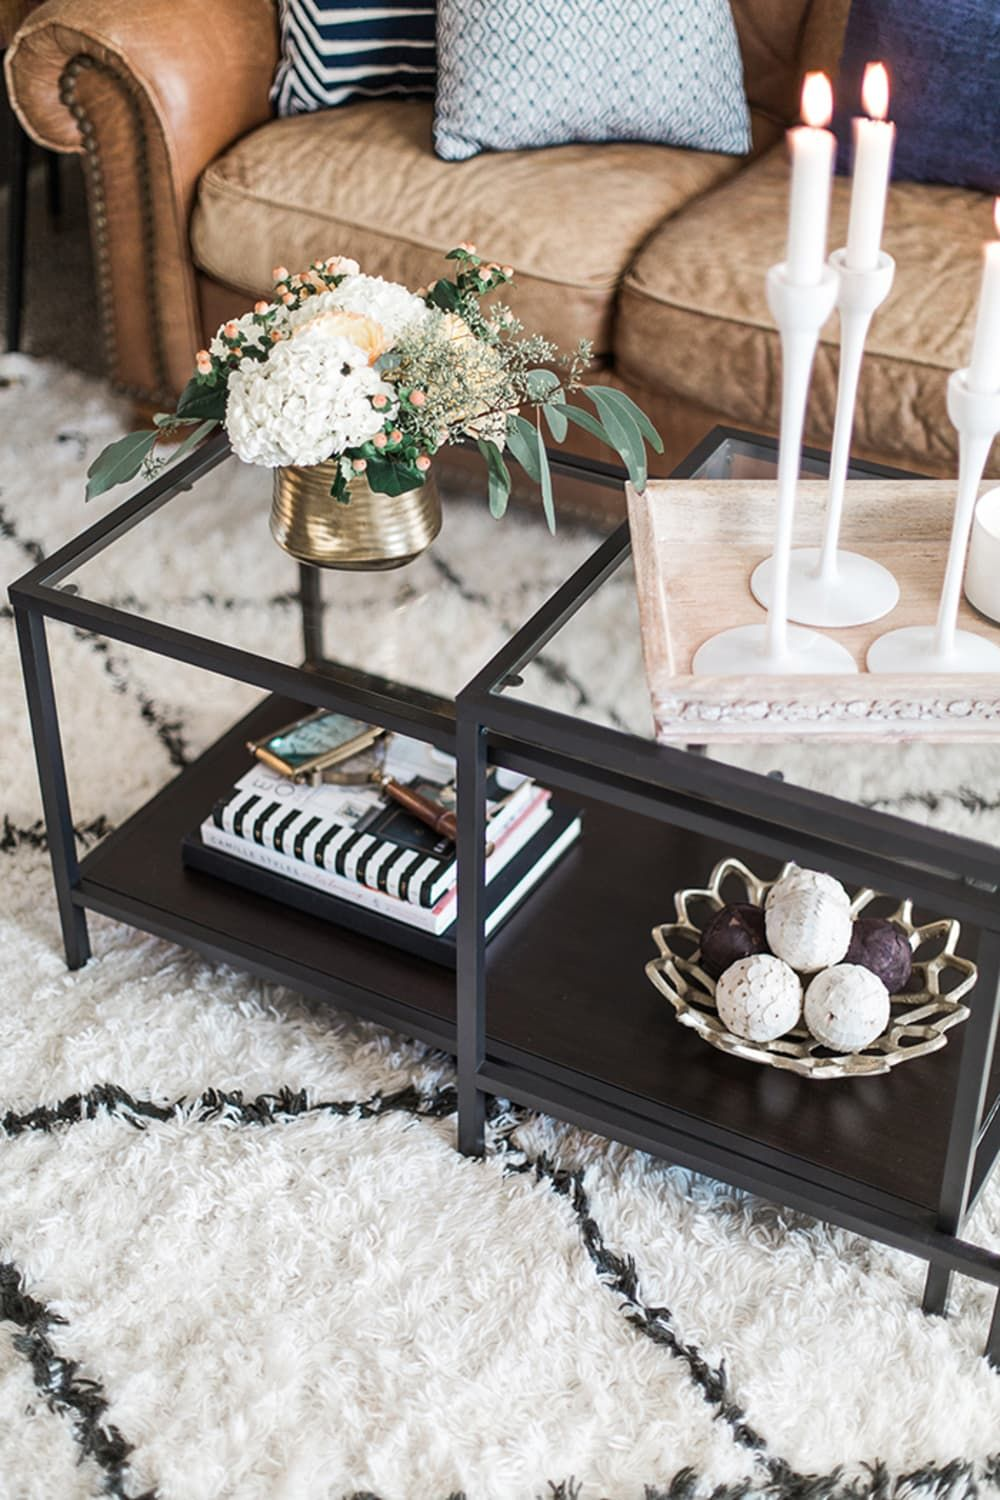 5 Golden Rules For Designing A Great Living Room Ikea Side Table Decorating Coffee Tables Home Decor Inspiration [ 1500 x 1000 Pixel ]